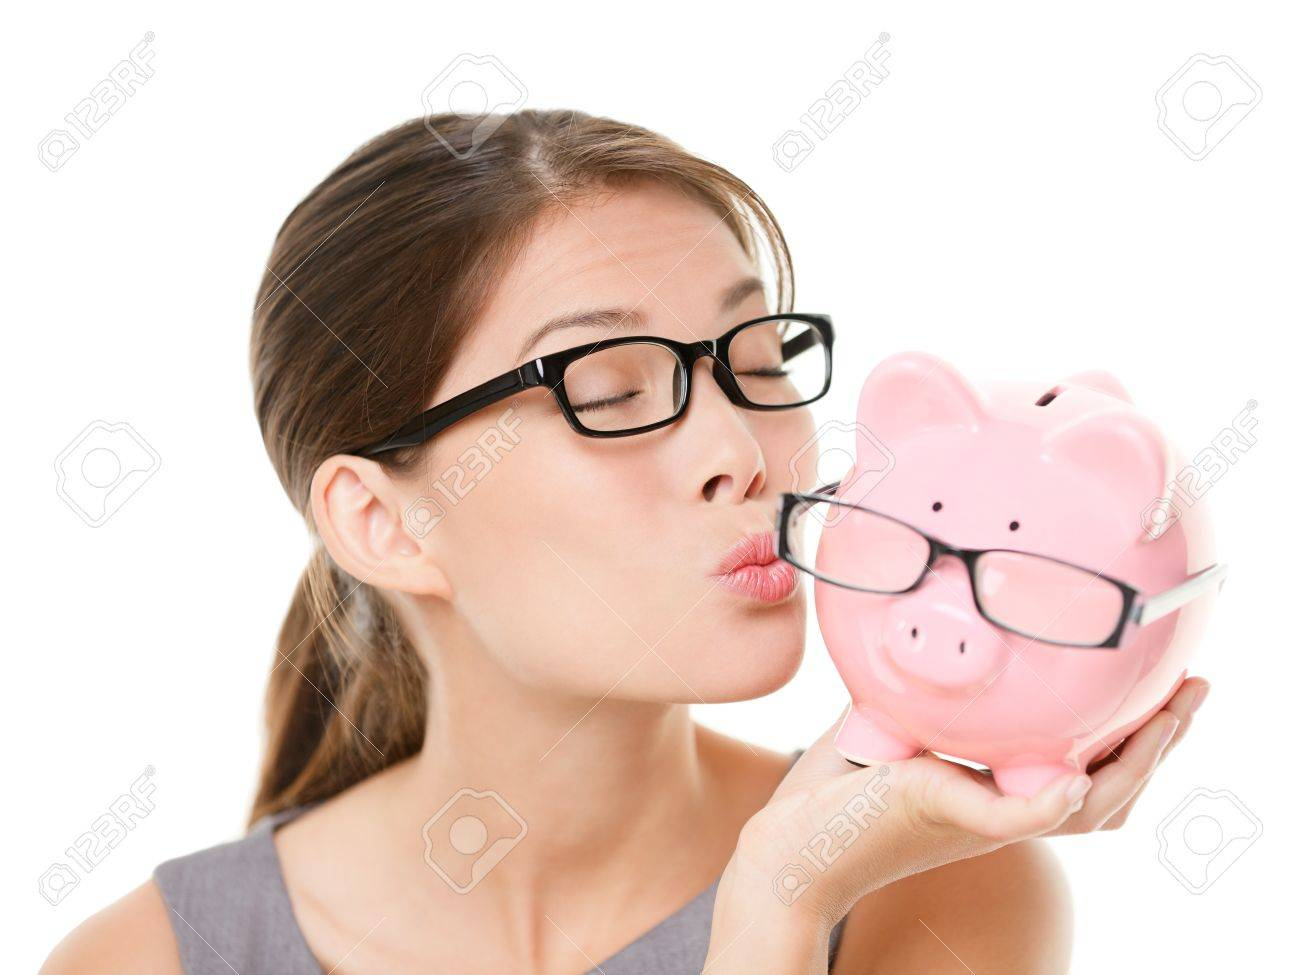 eyewear glasses  Glasses Sale Concept Happy Woman Kissing Piggy Bank Wearing ...